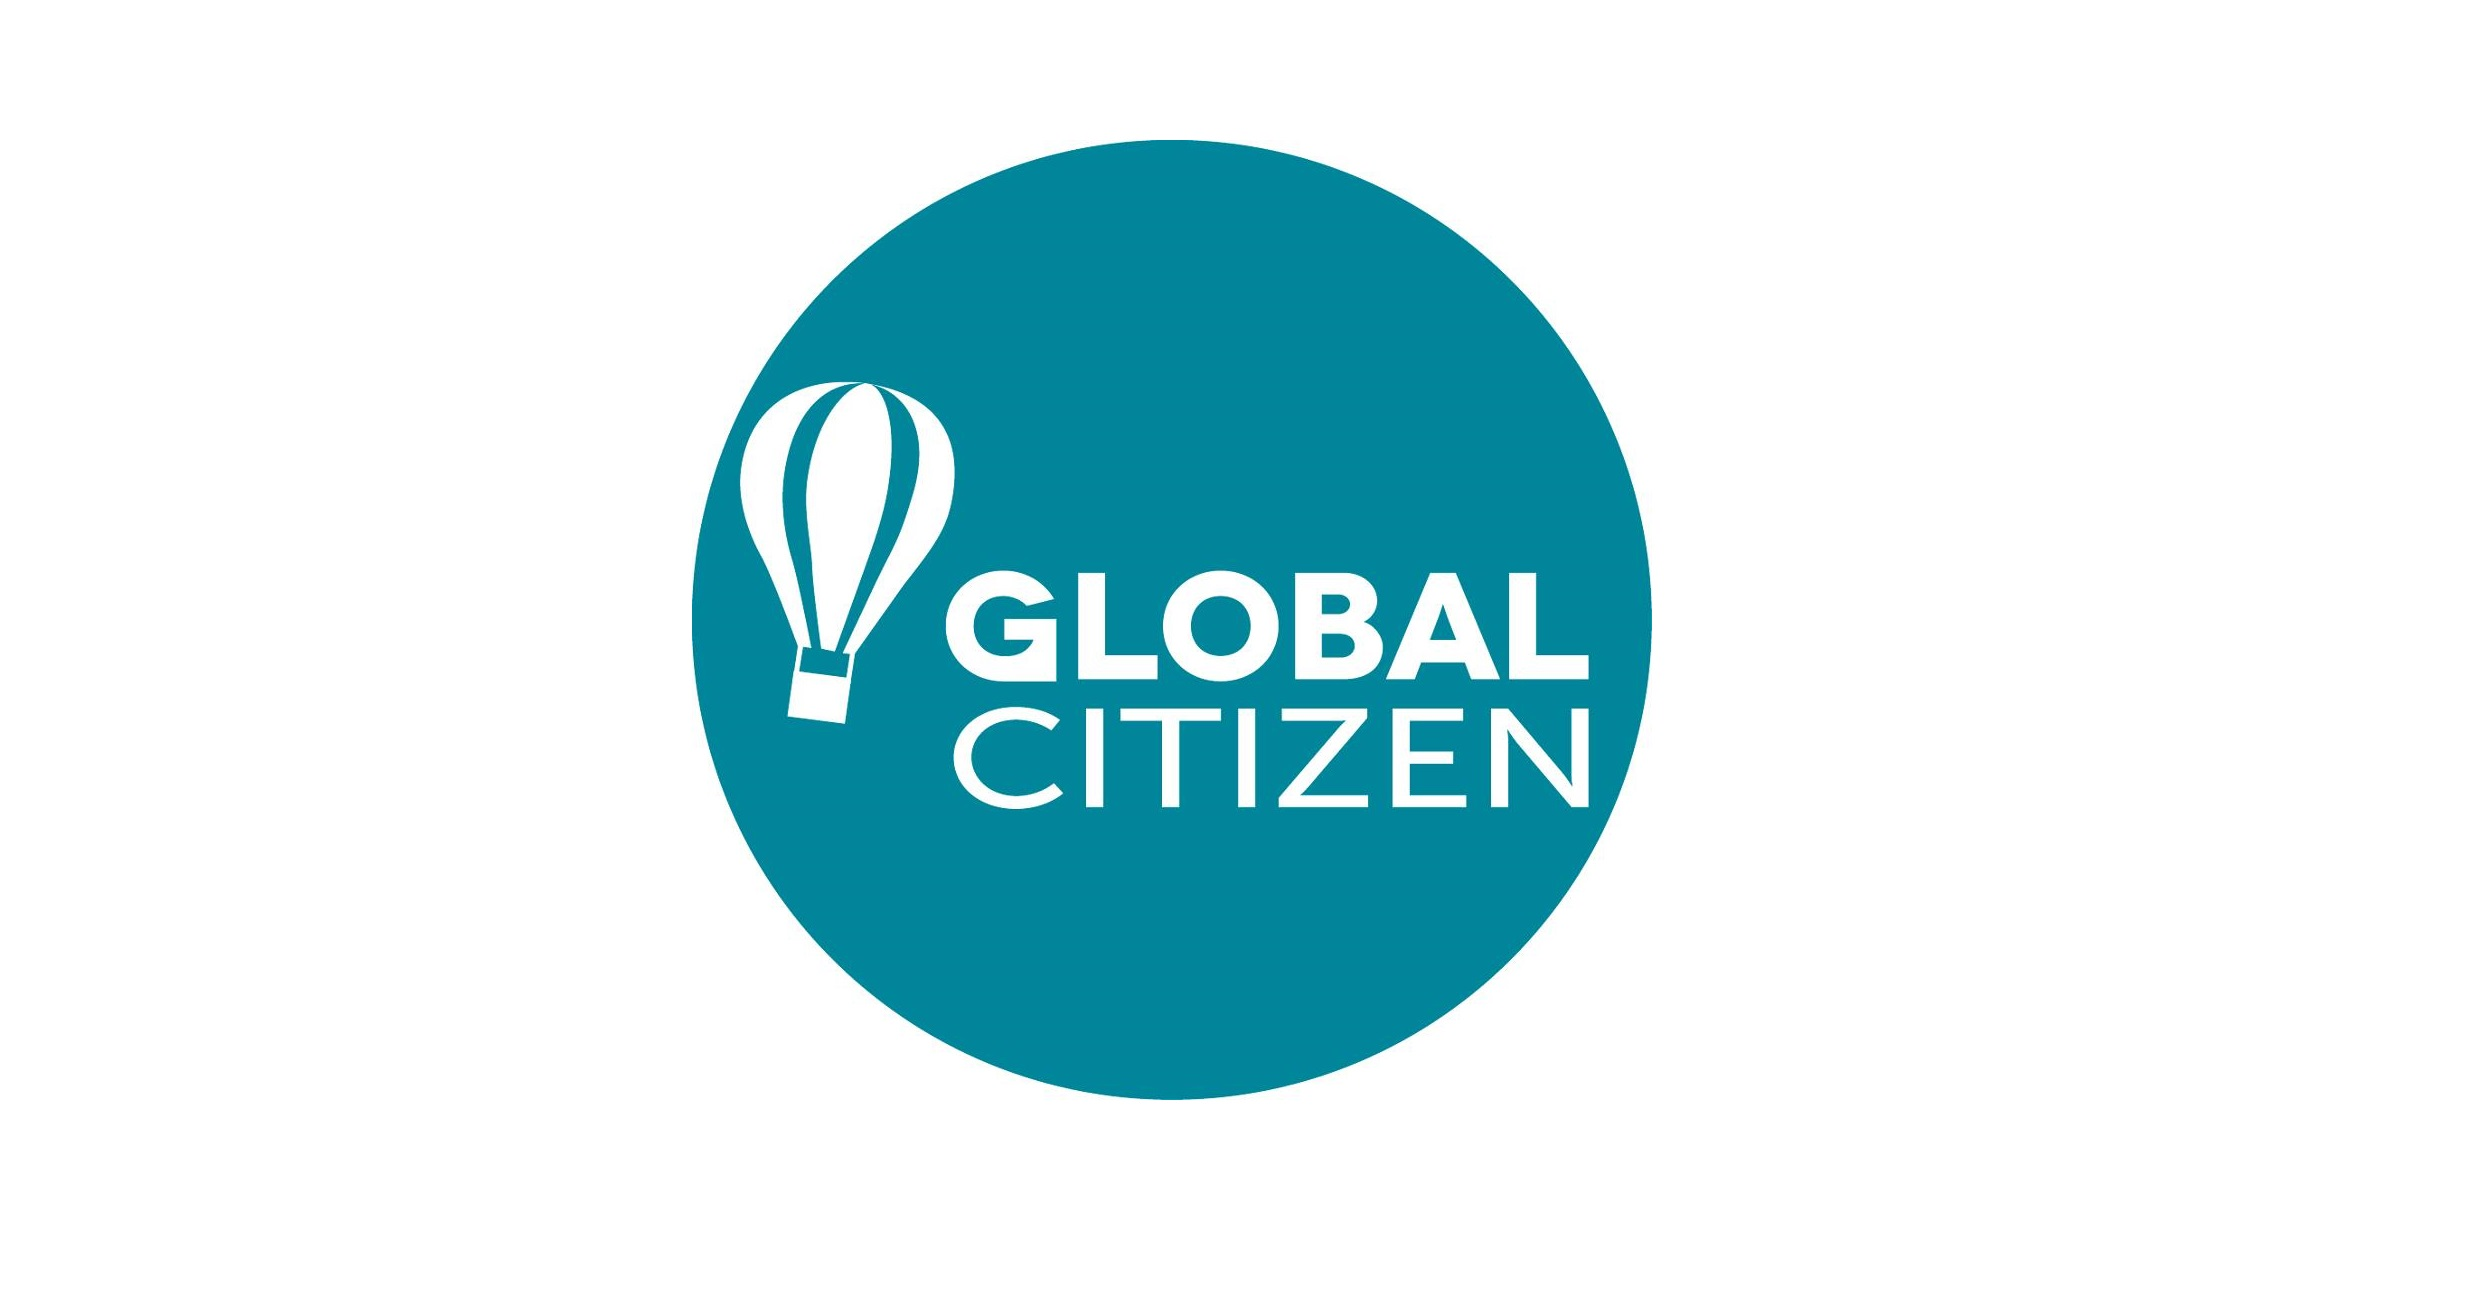 1 Global Citizen logo1